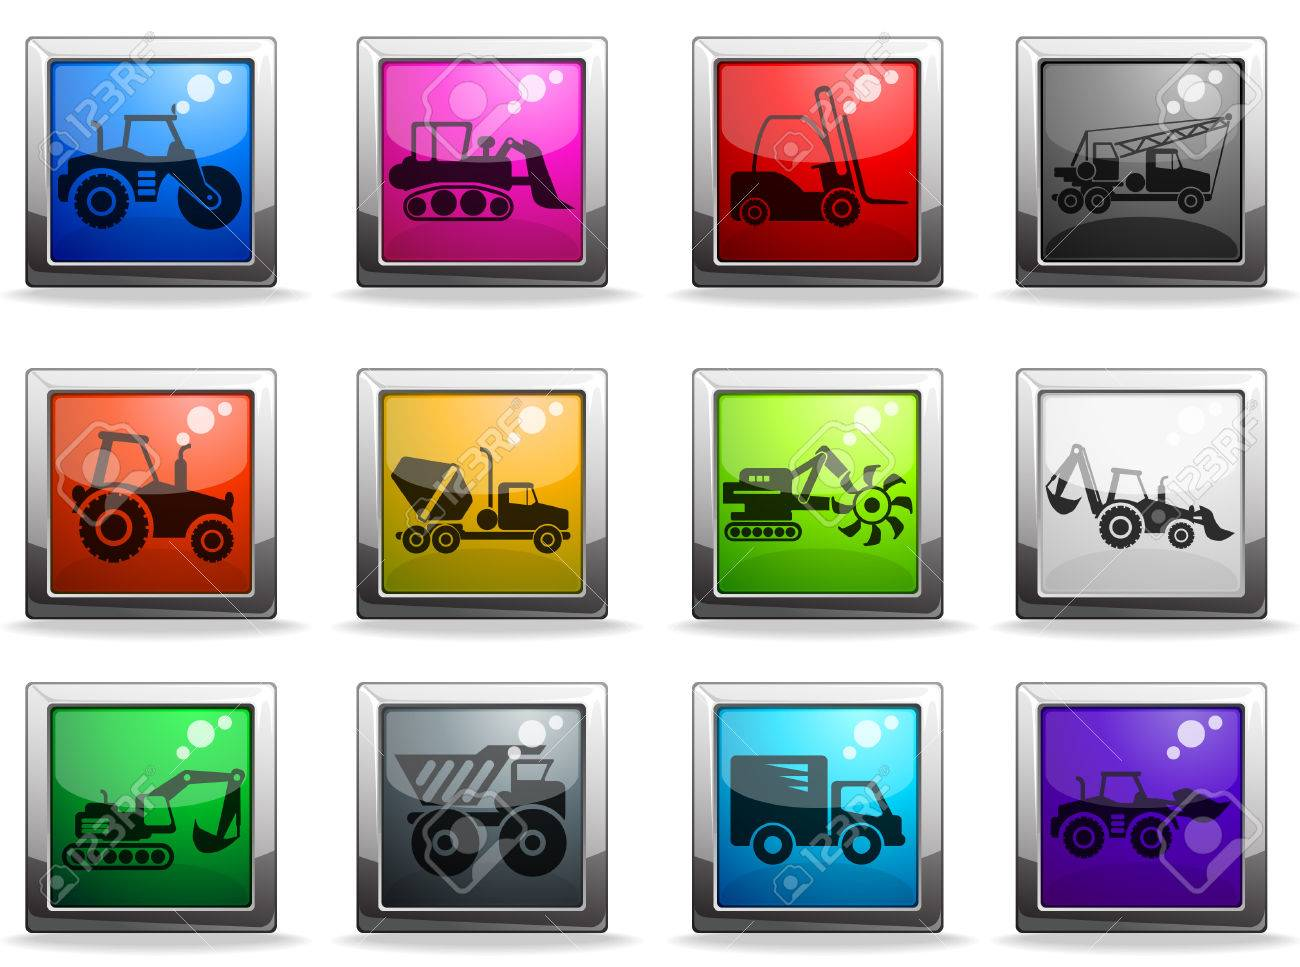 Symbols of construction machines royalty free cliparts vectors symbols of construction machines stock vector 28223903 buycottarizona Image collections